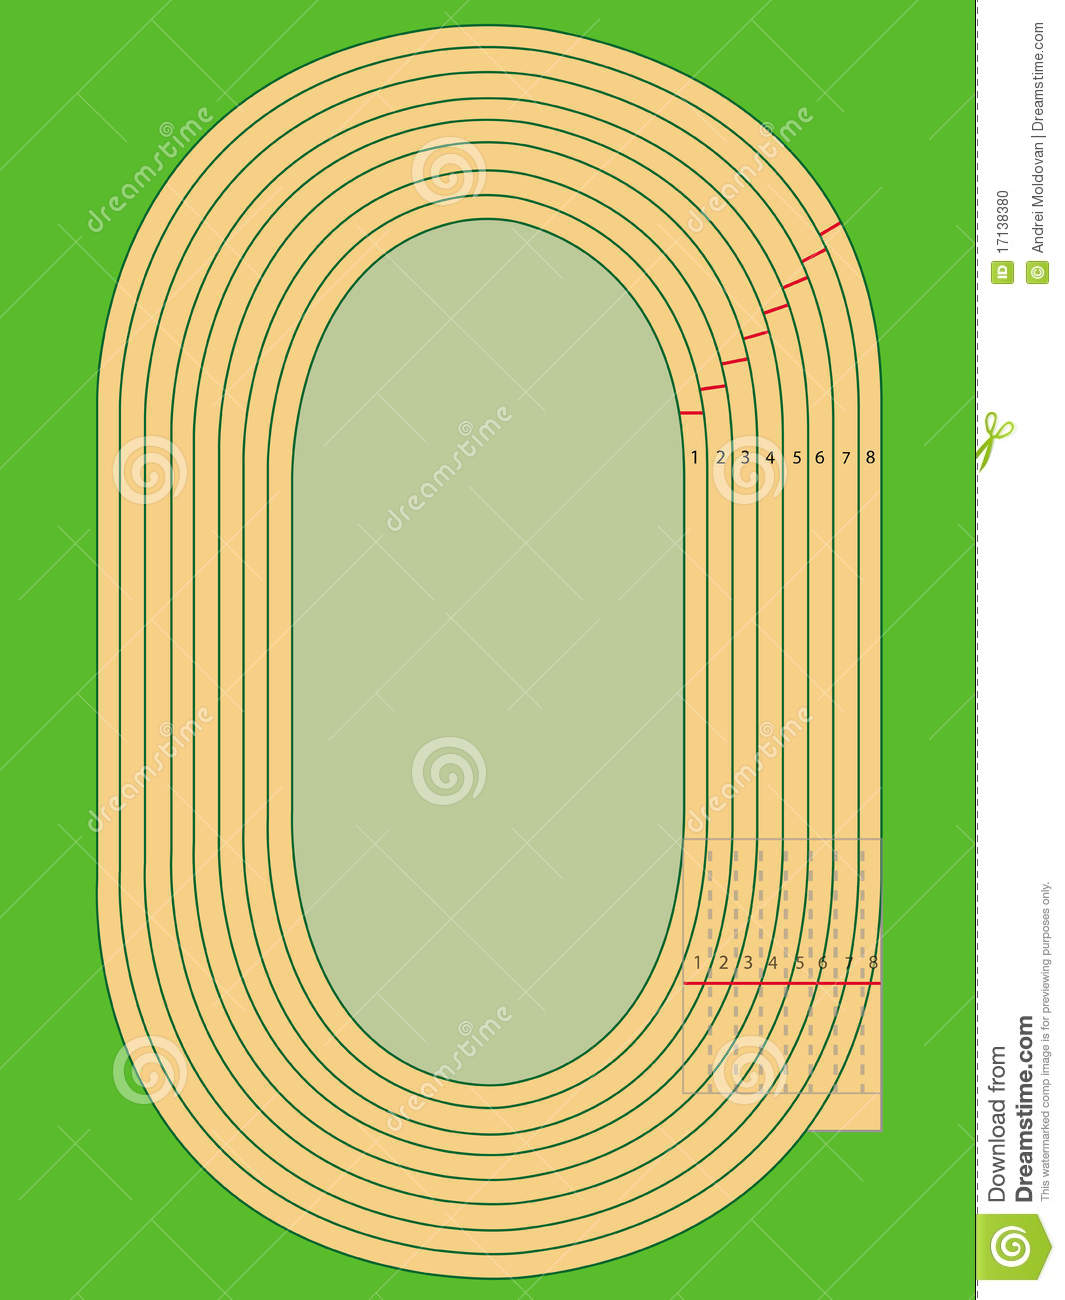 Running Track Clipart - Clipart Kid